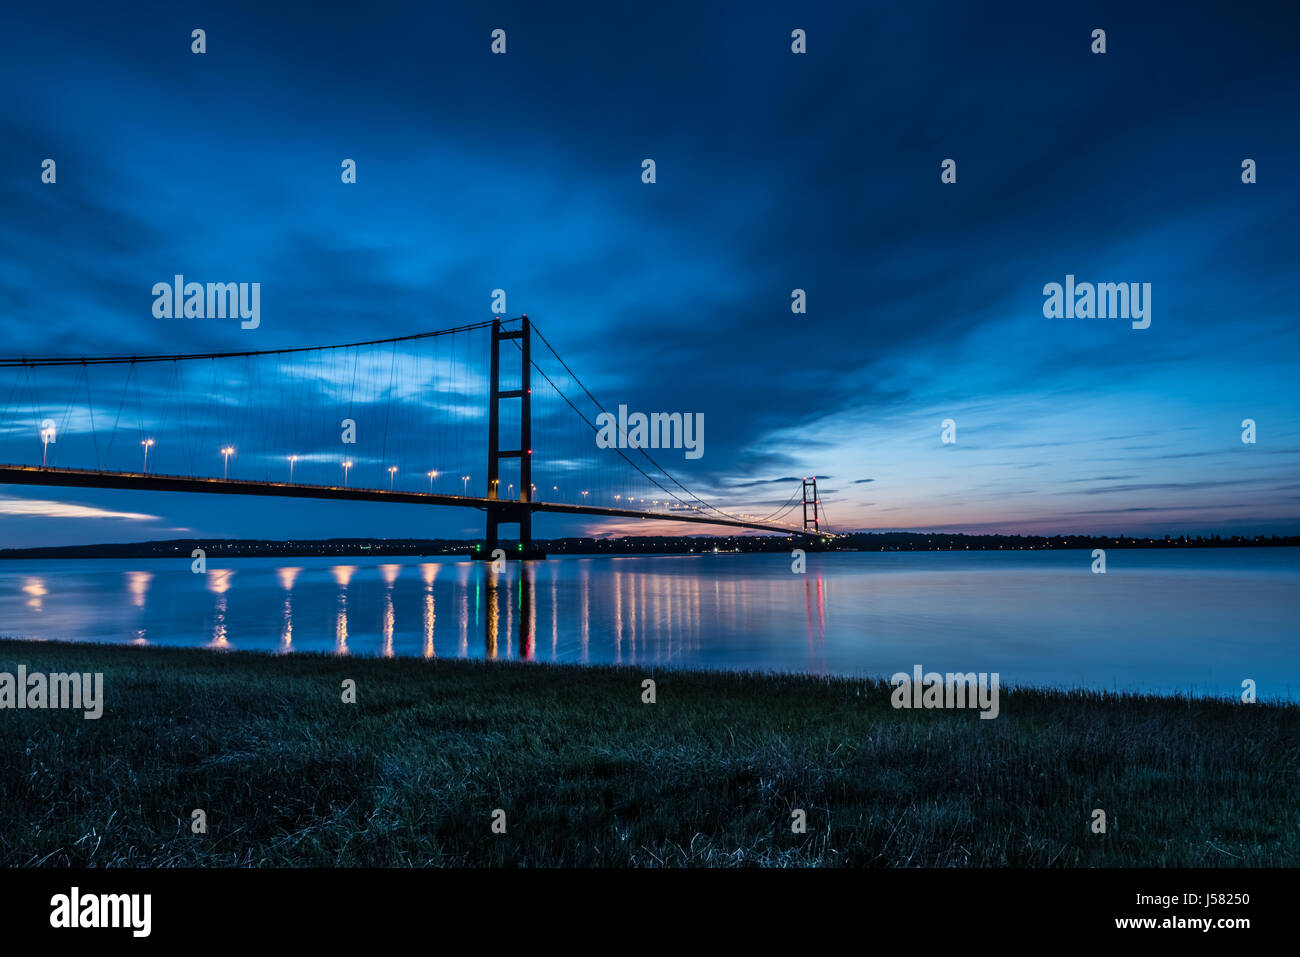 Humber Bridge at night - Stock Image